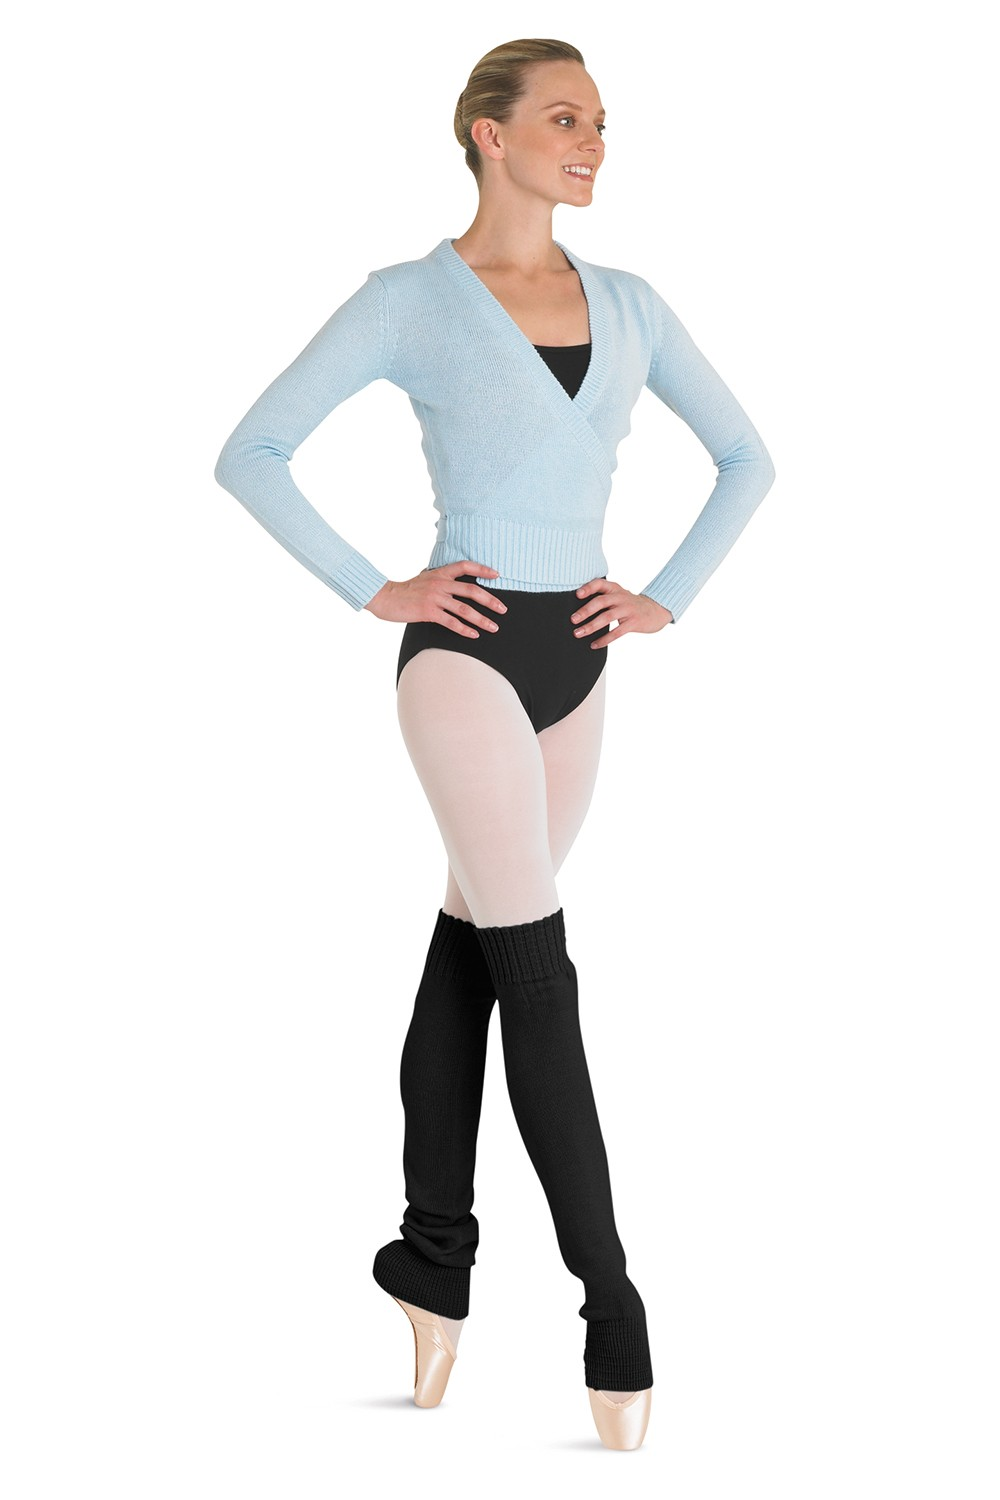 Knee High Legwarmer Women's Dance Underwear